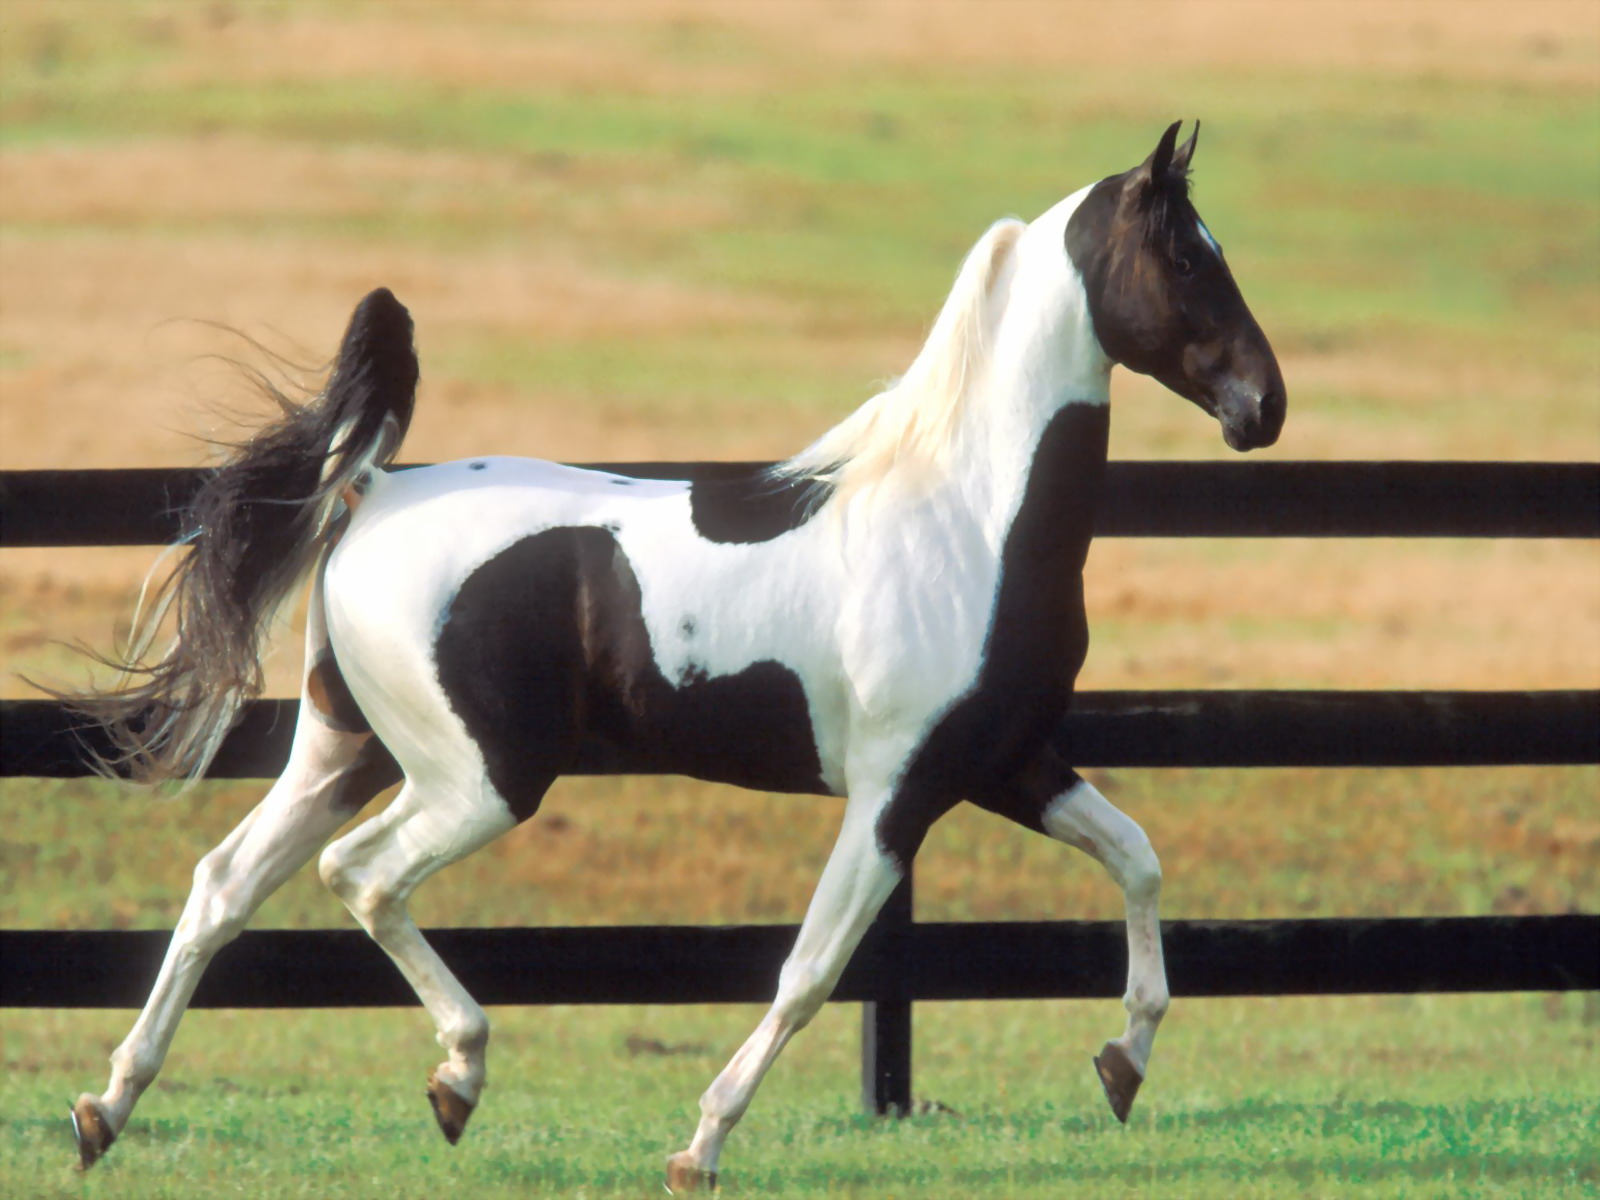 Running white and black horse animal